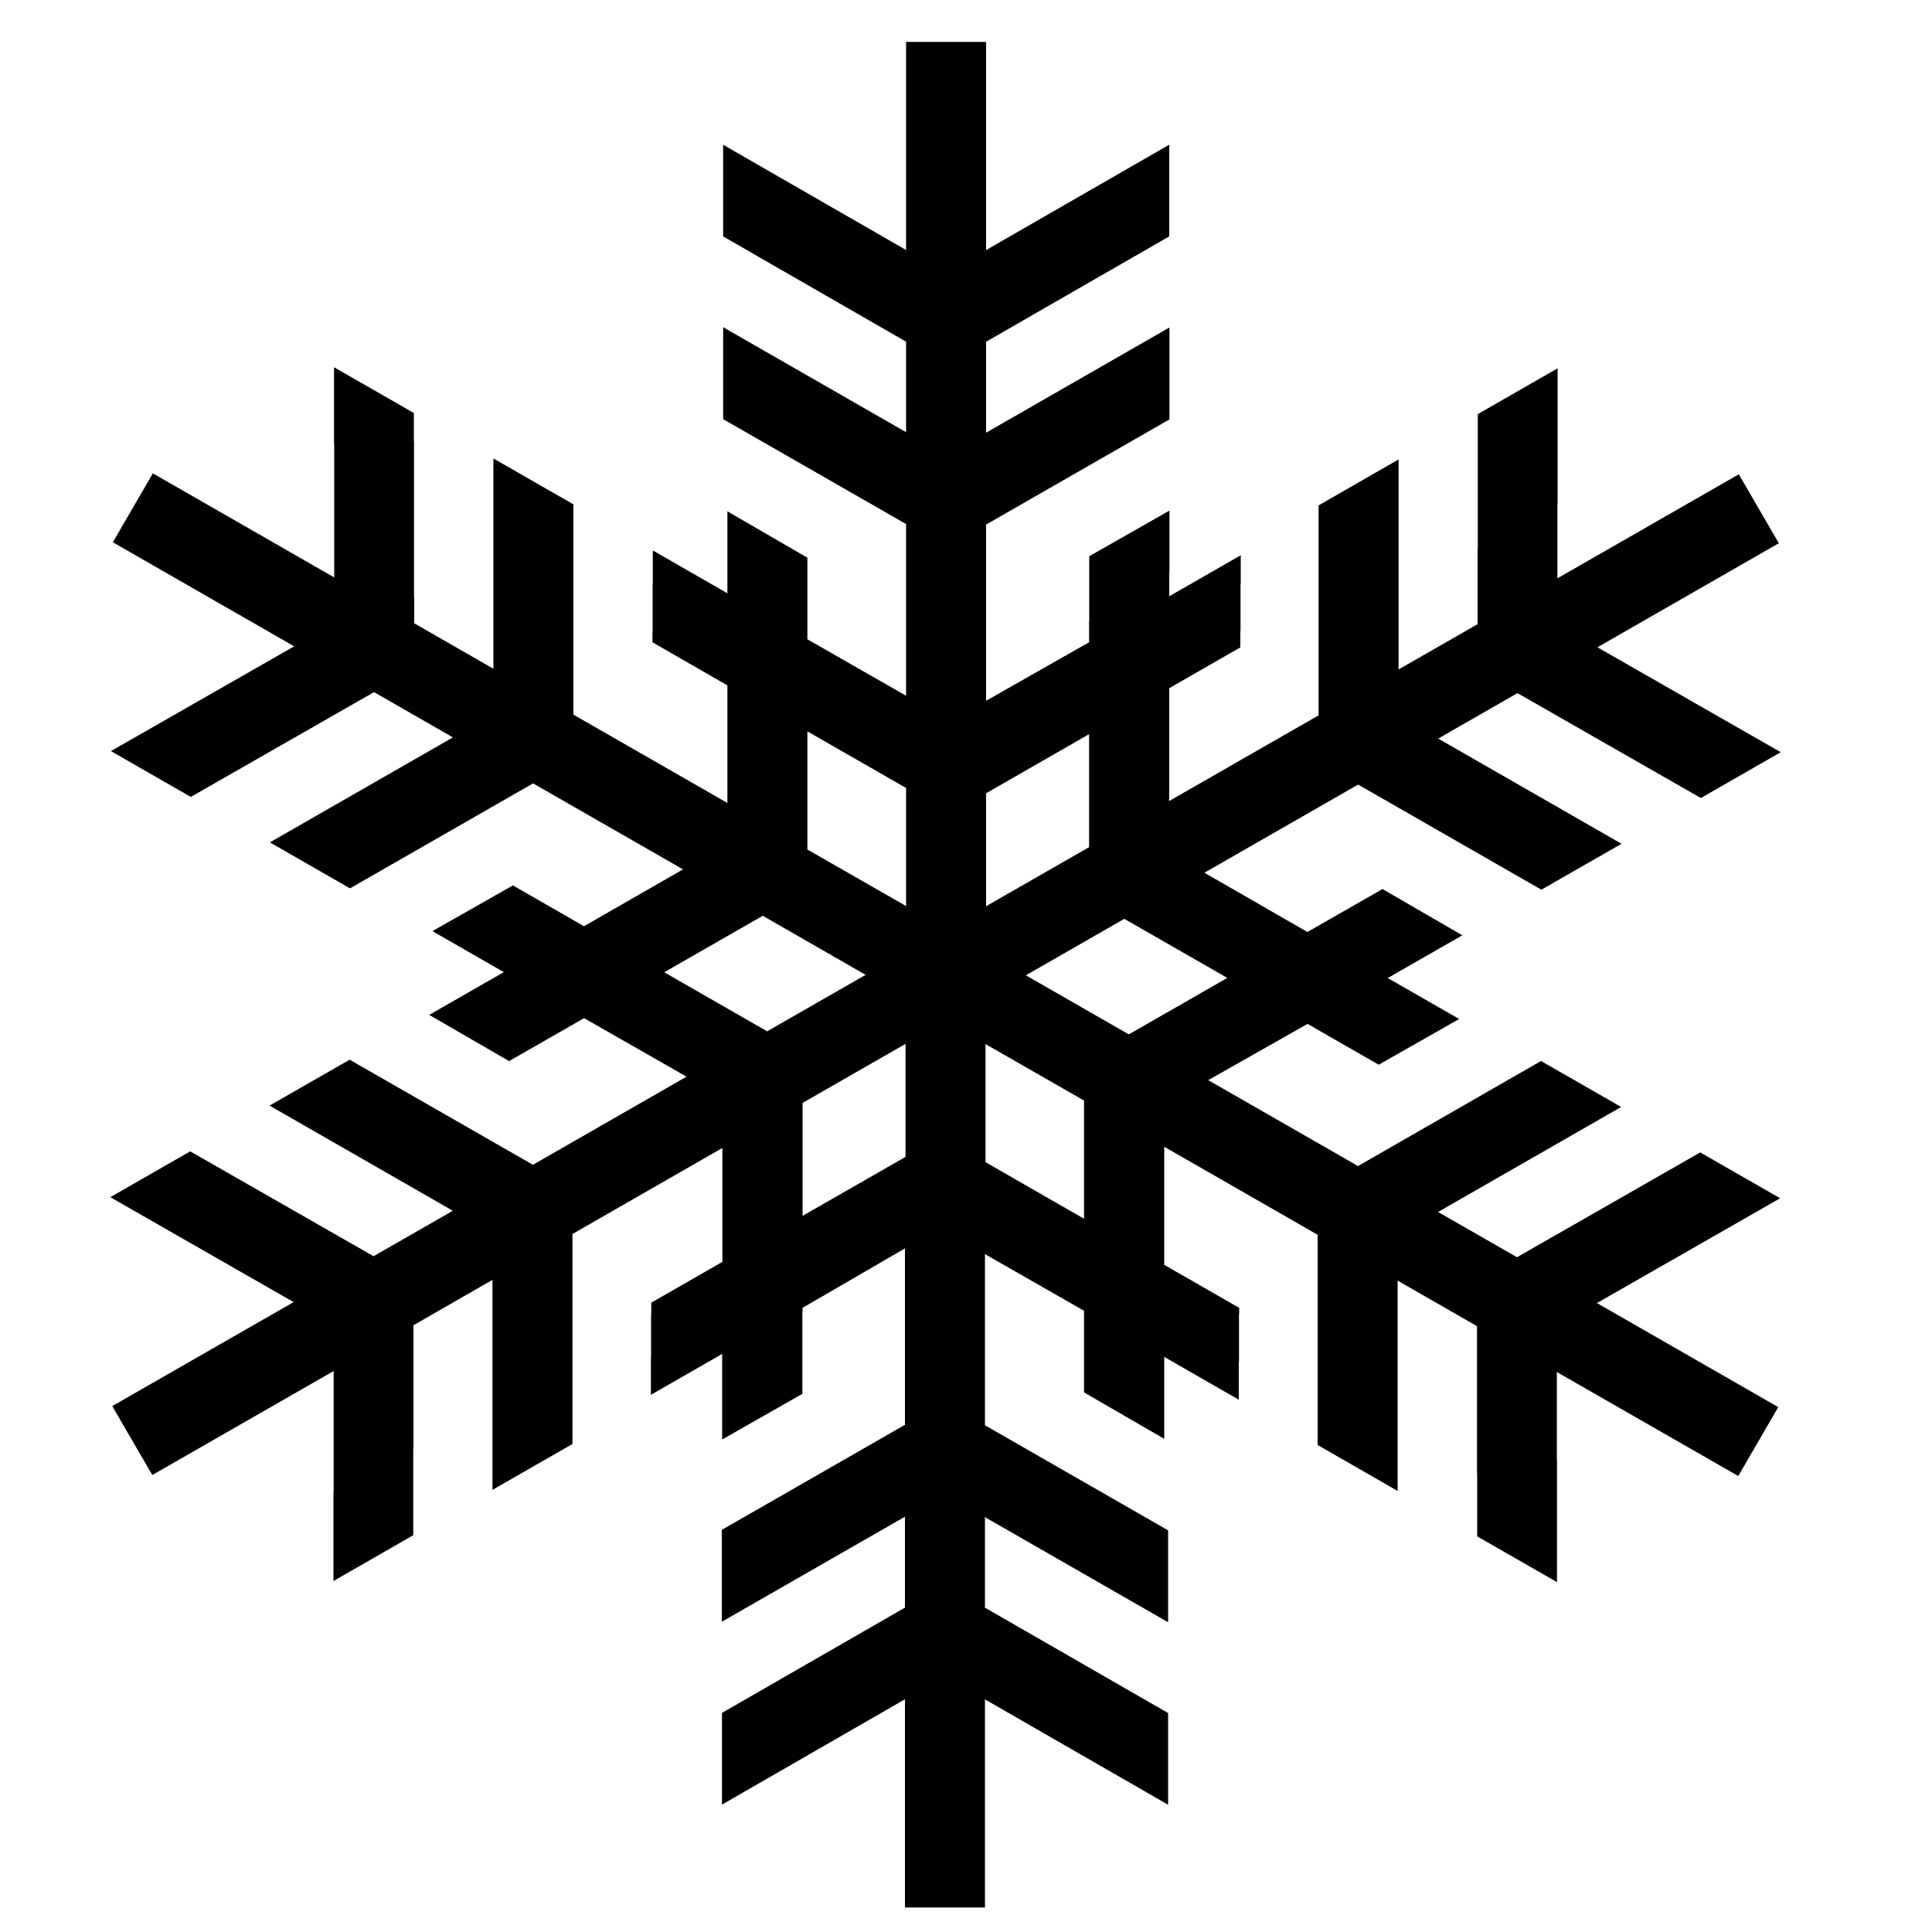 Background clipart library. White snowflake clear free